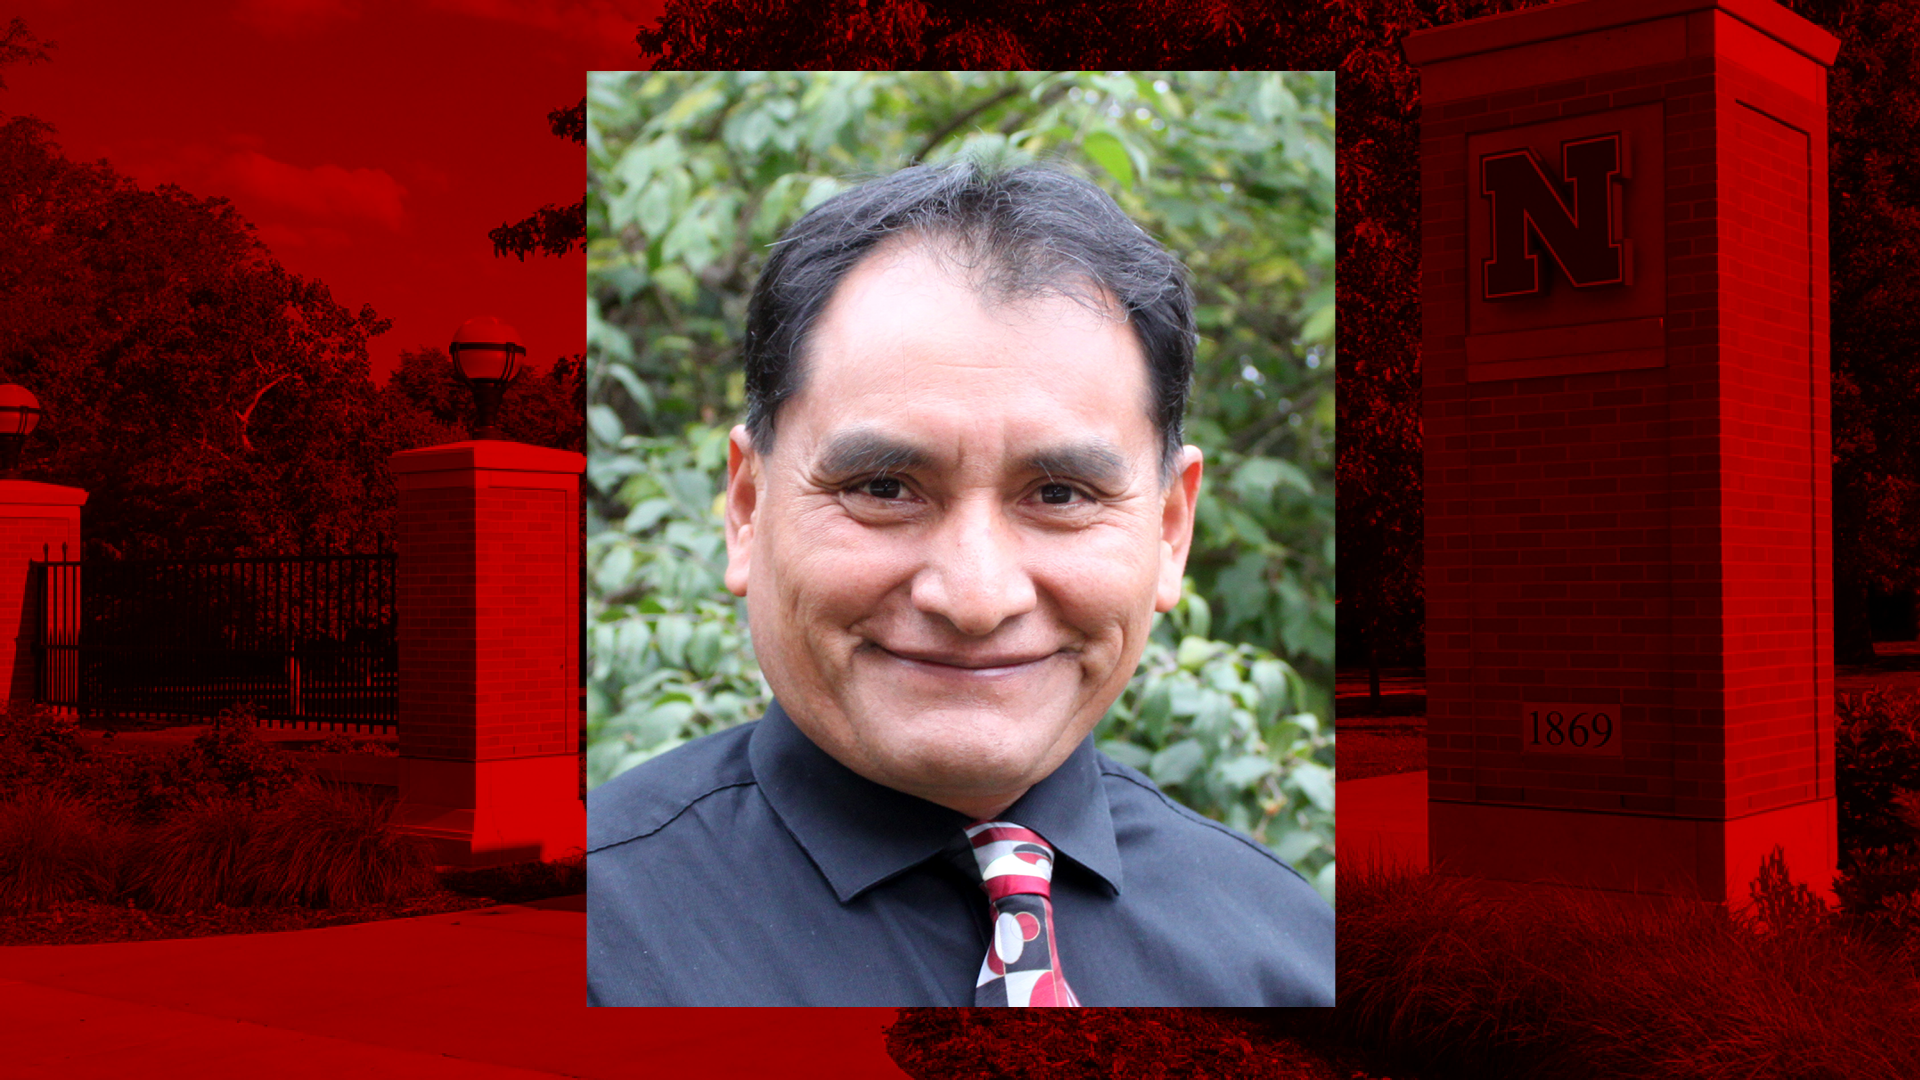 Nebraska's Humberto Blanco will present this fall's first Agronomy and Horticulture seminar Sept. 10.